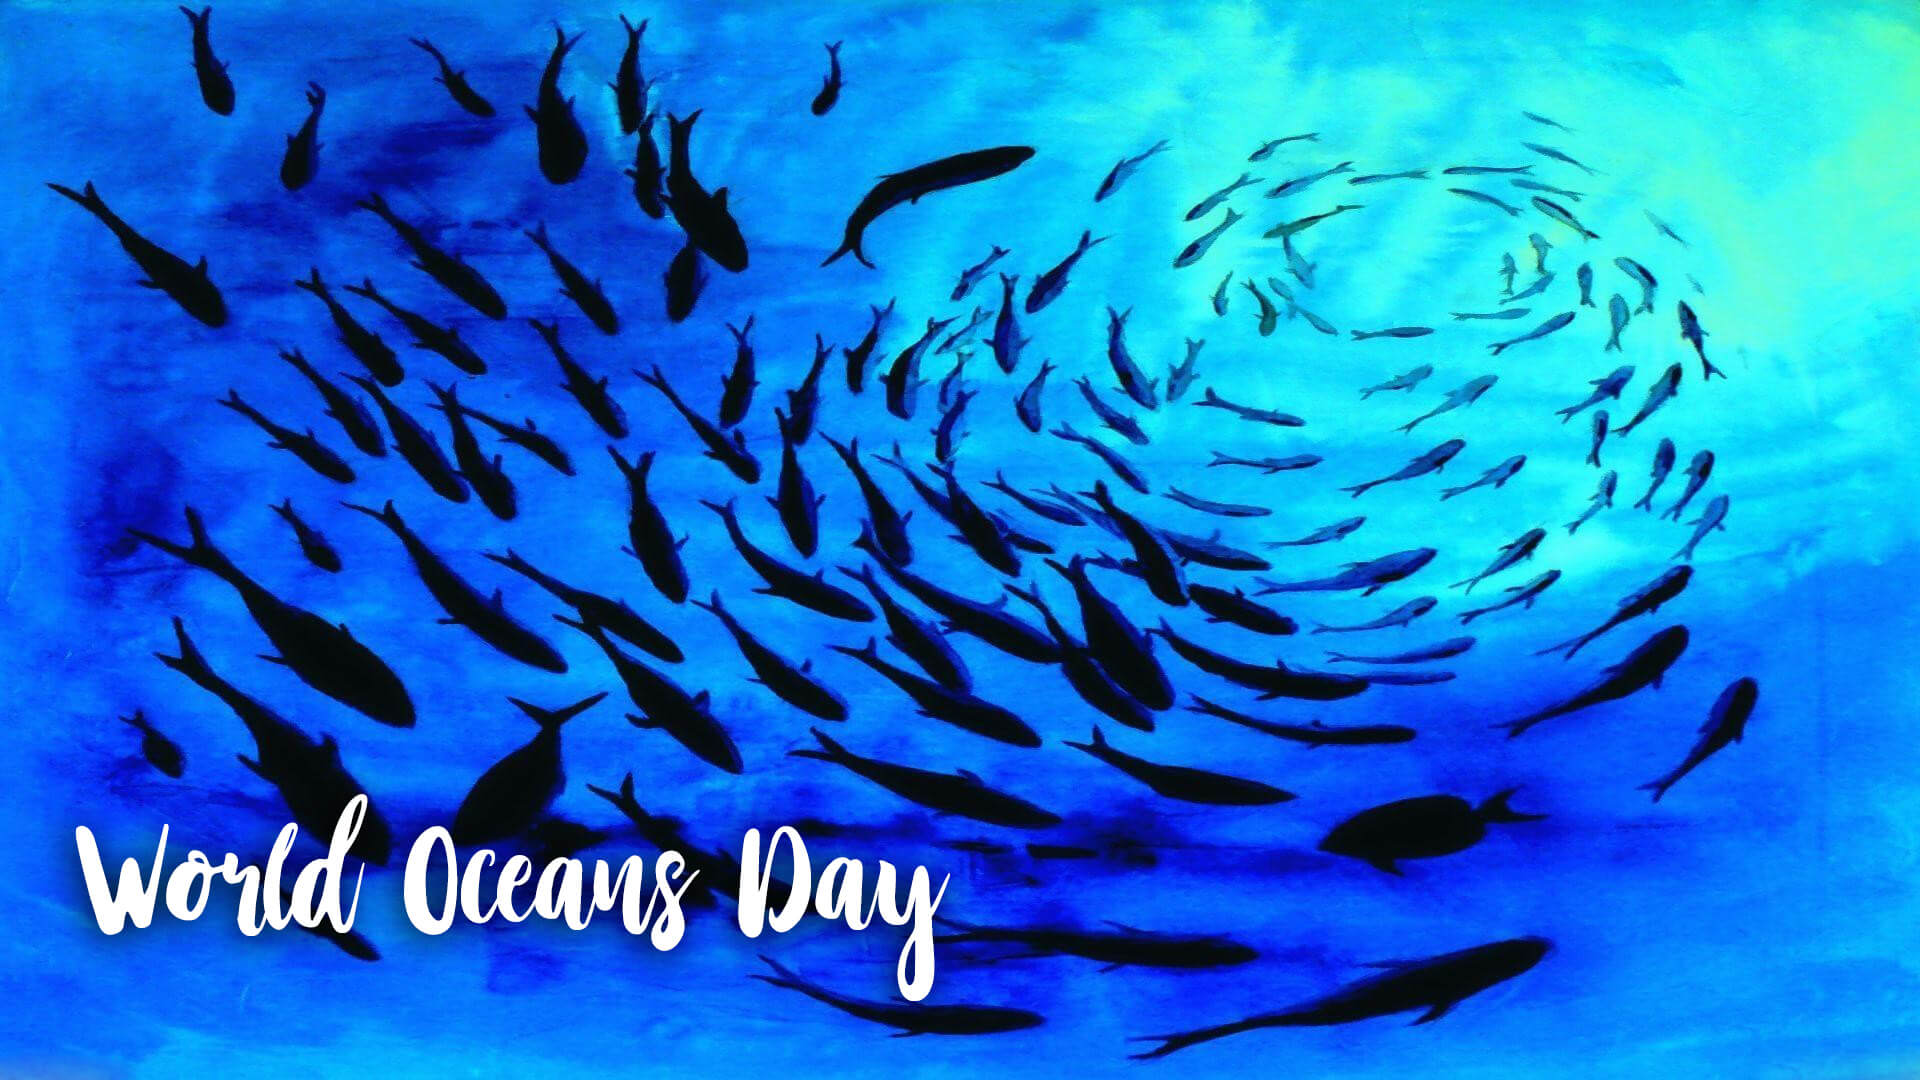 happy world oceans day under the ocean